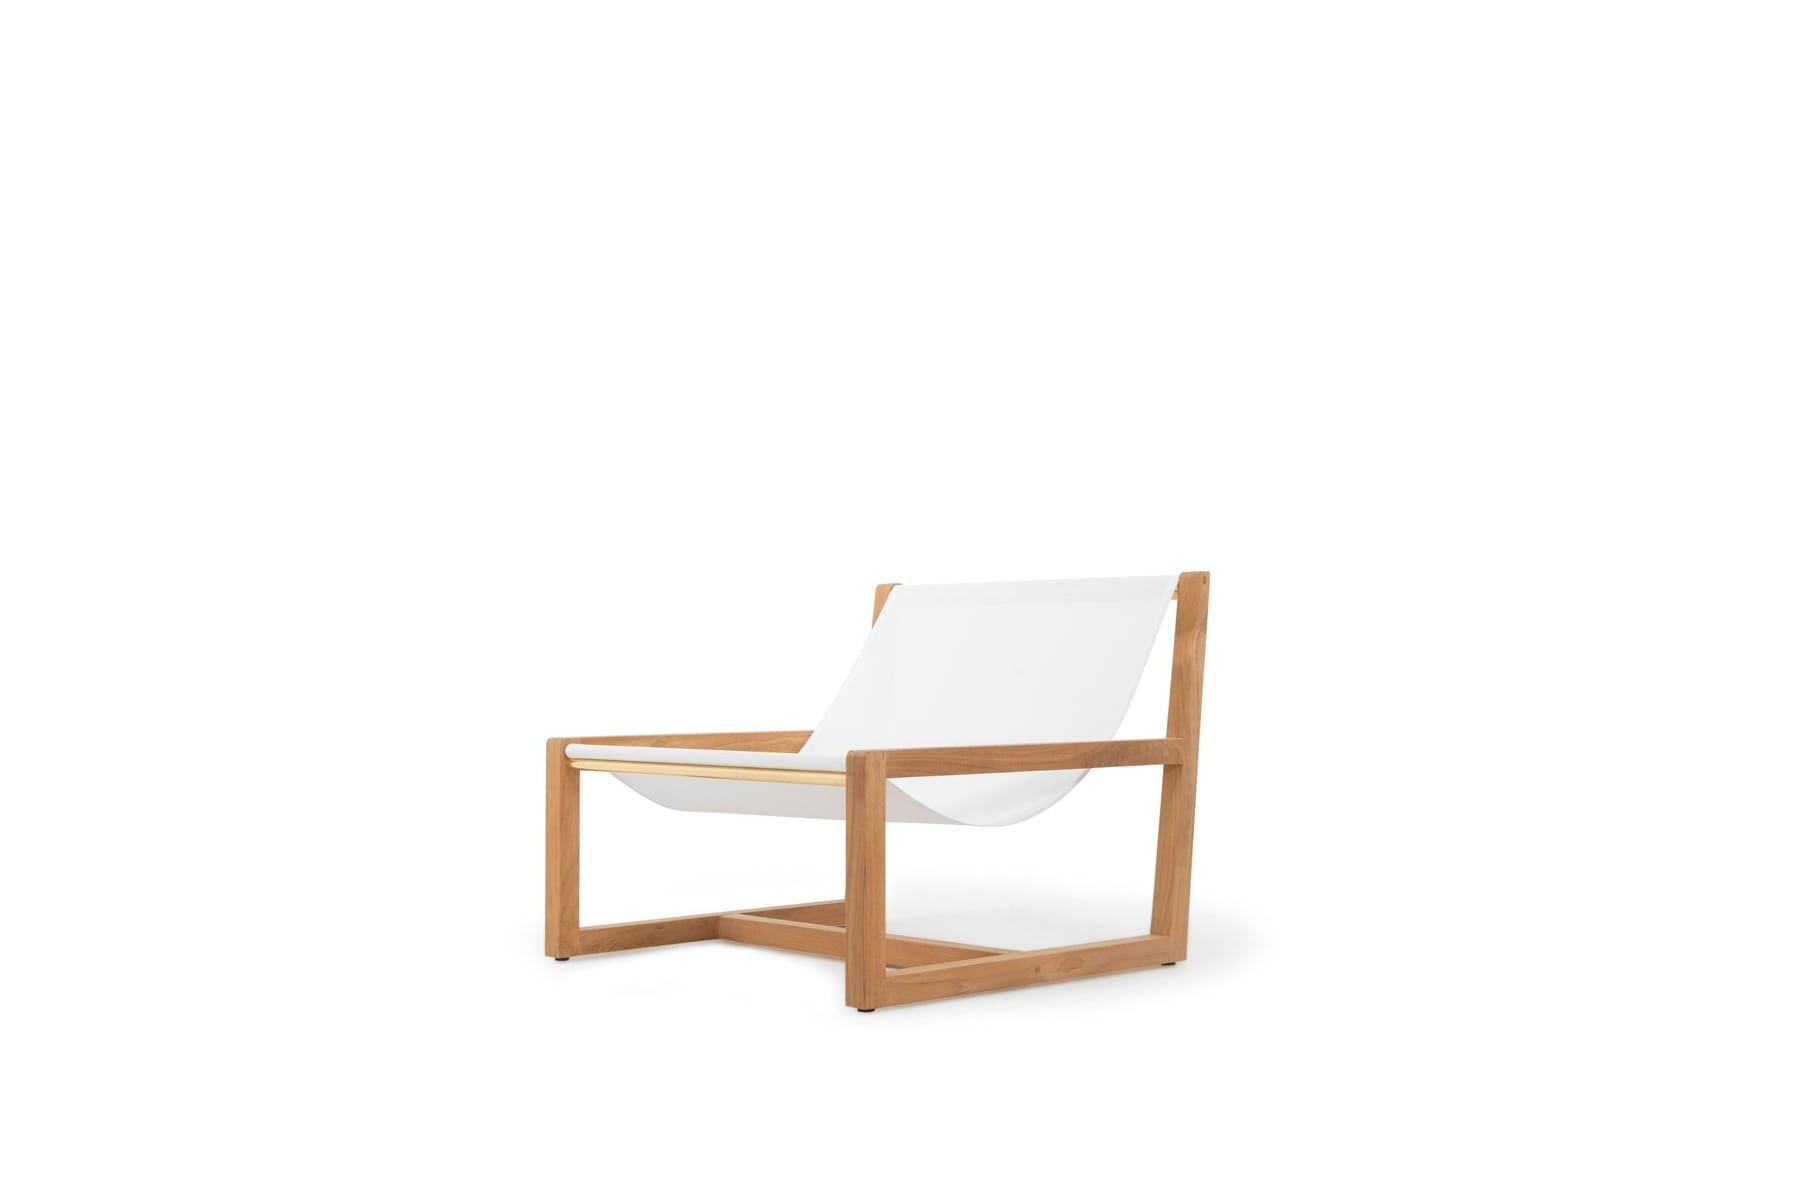 Hollywood Wood Chair With Regard To Favorite Outdoor Wood Sling Chairs (View 22 of 25)